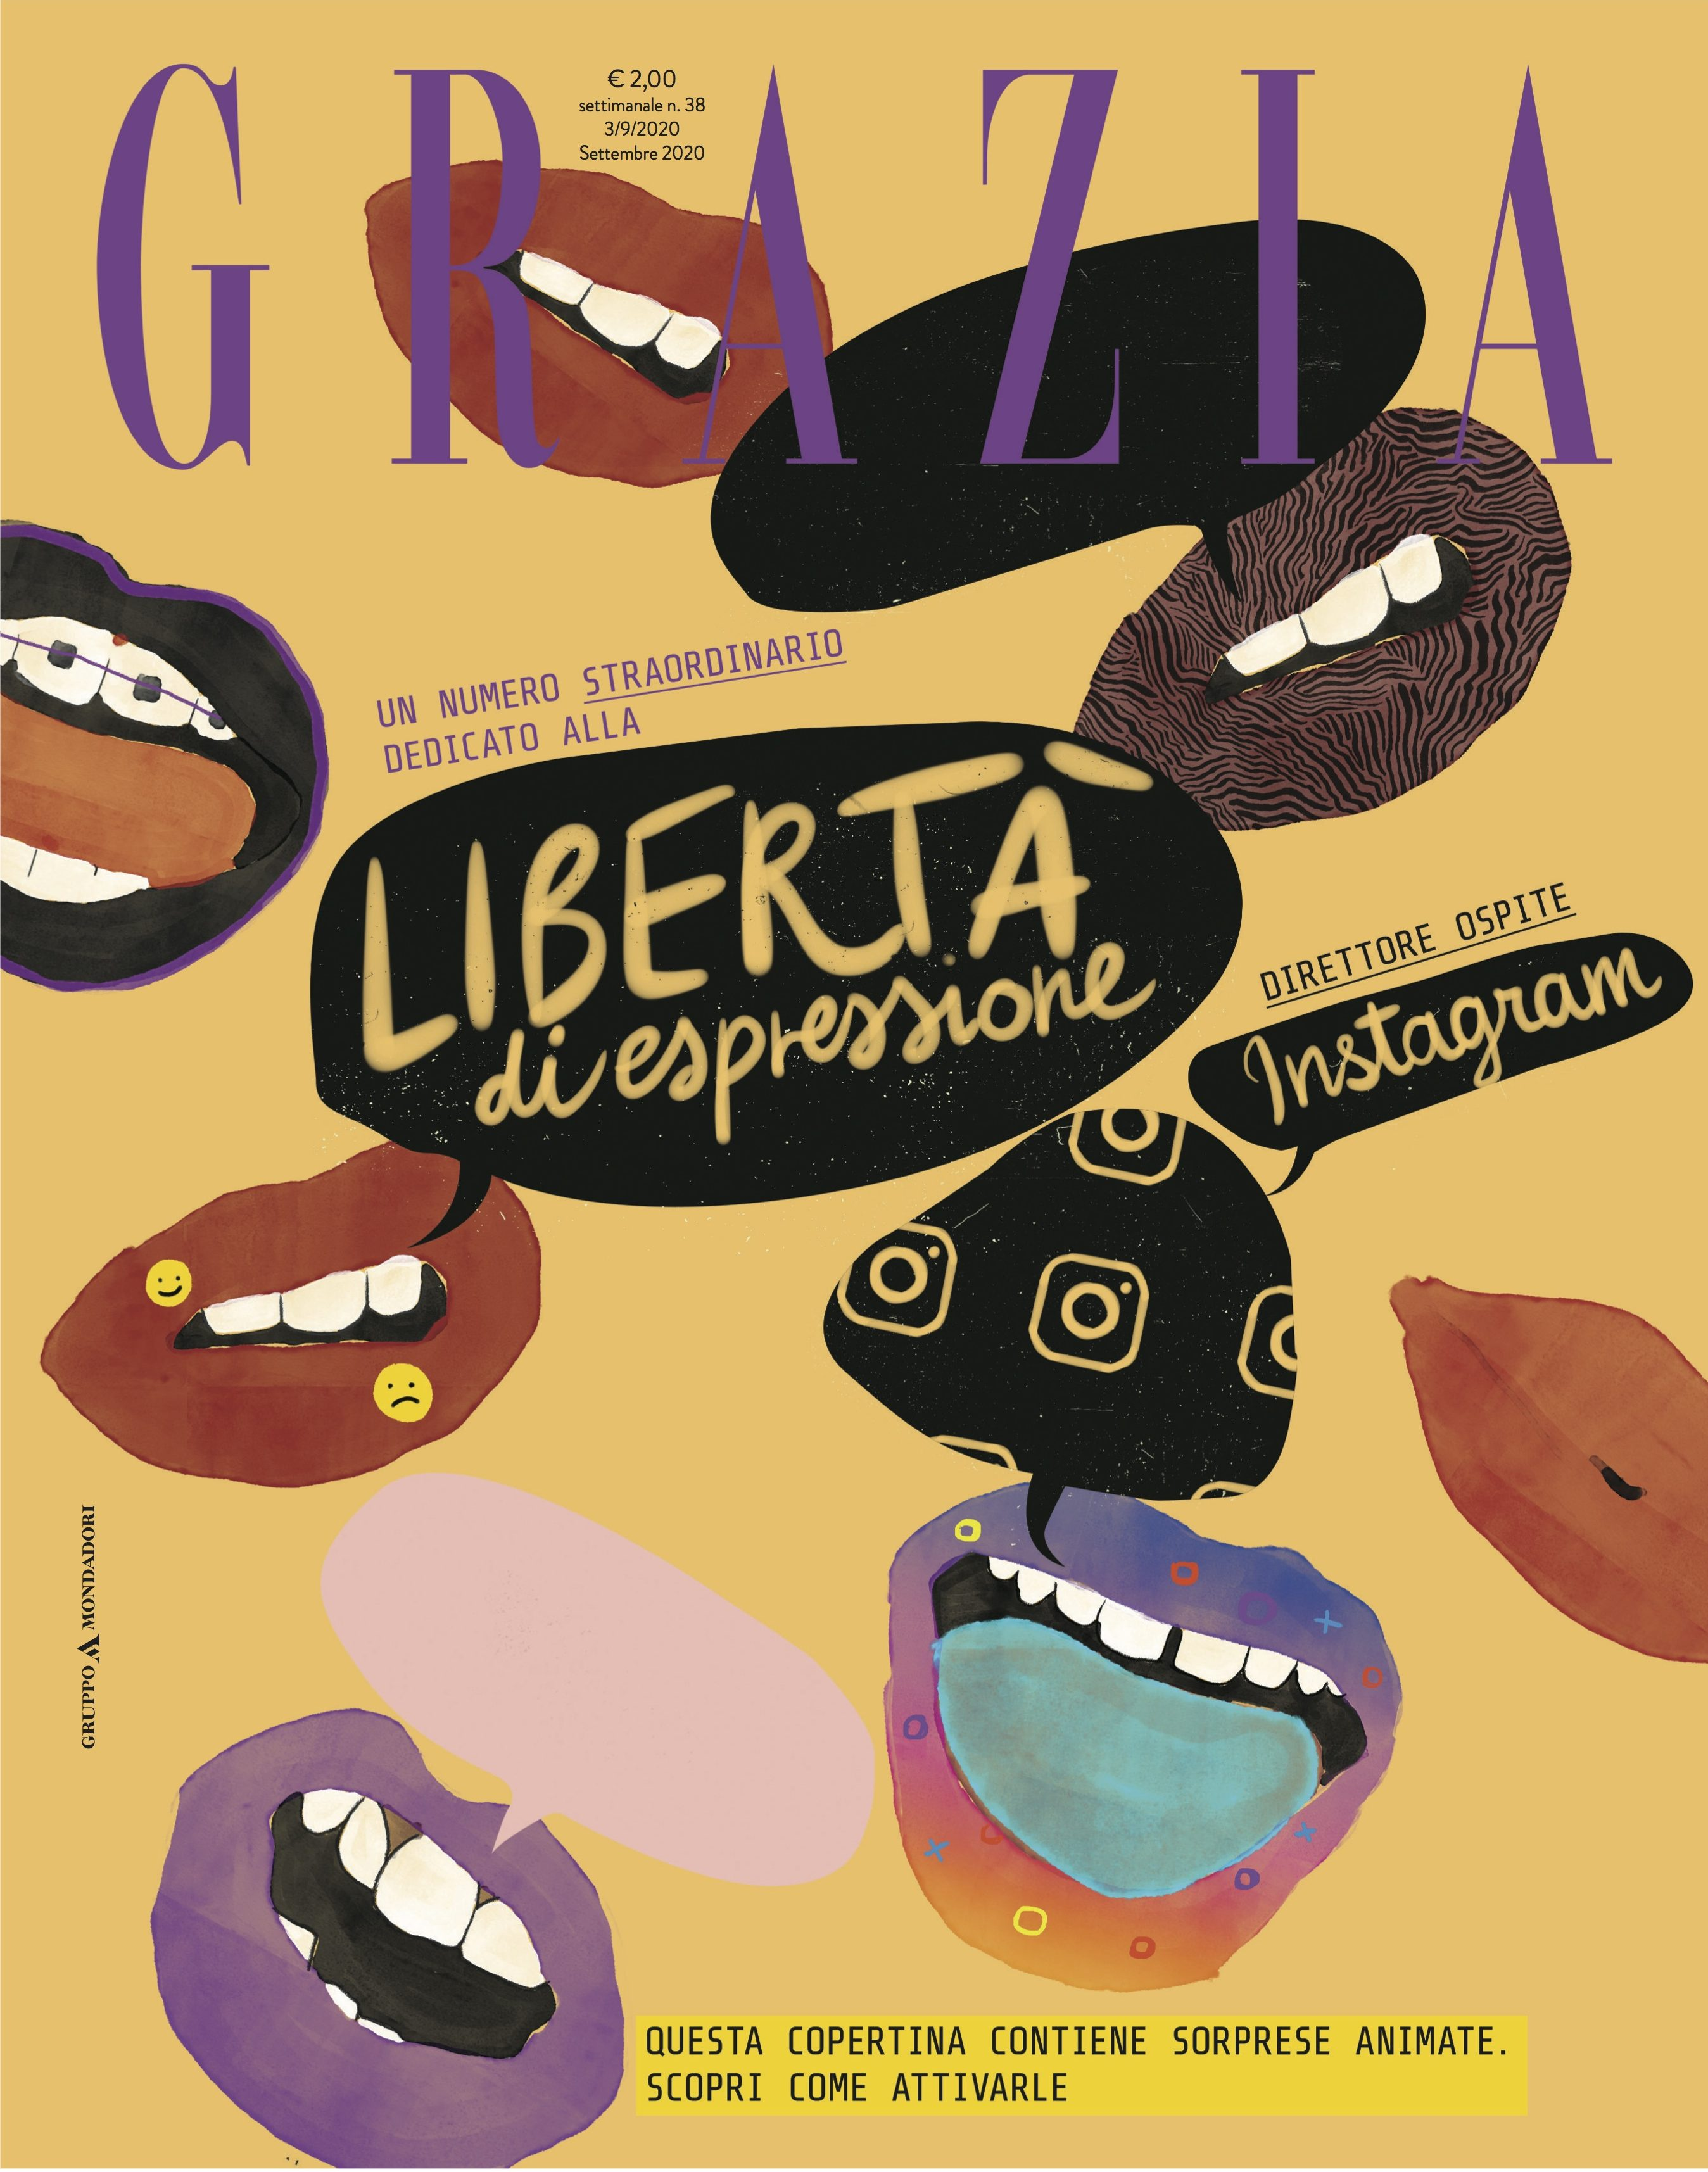 The cover of the upcoming issue of Grazia Italia.